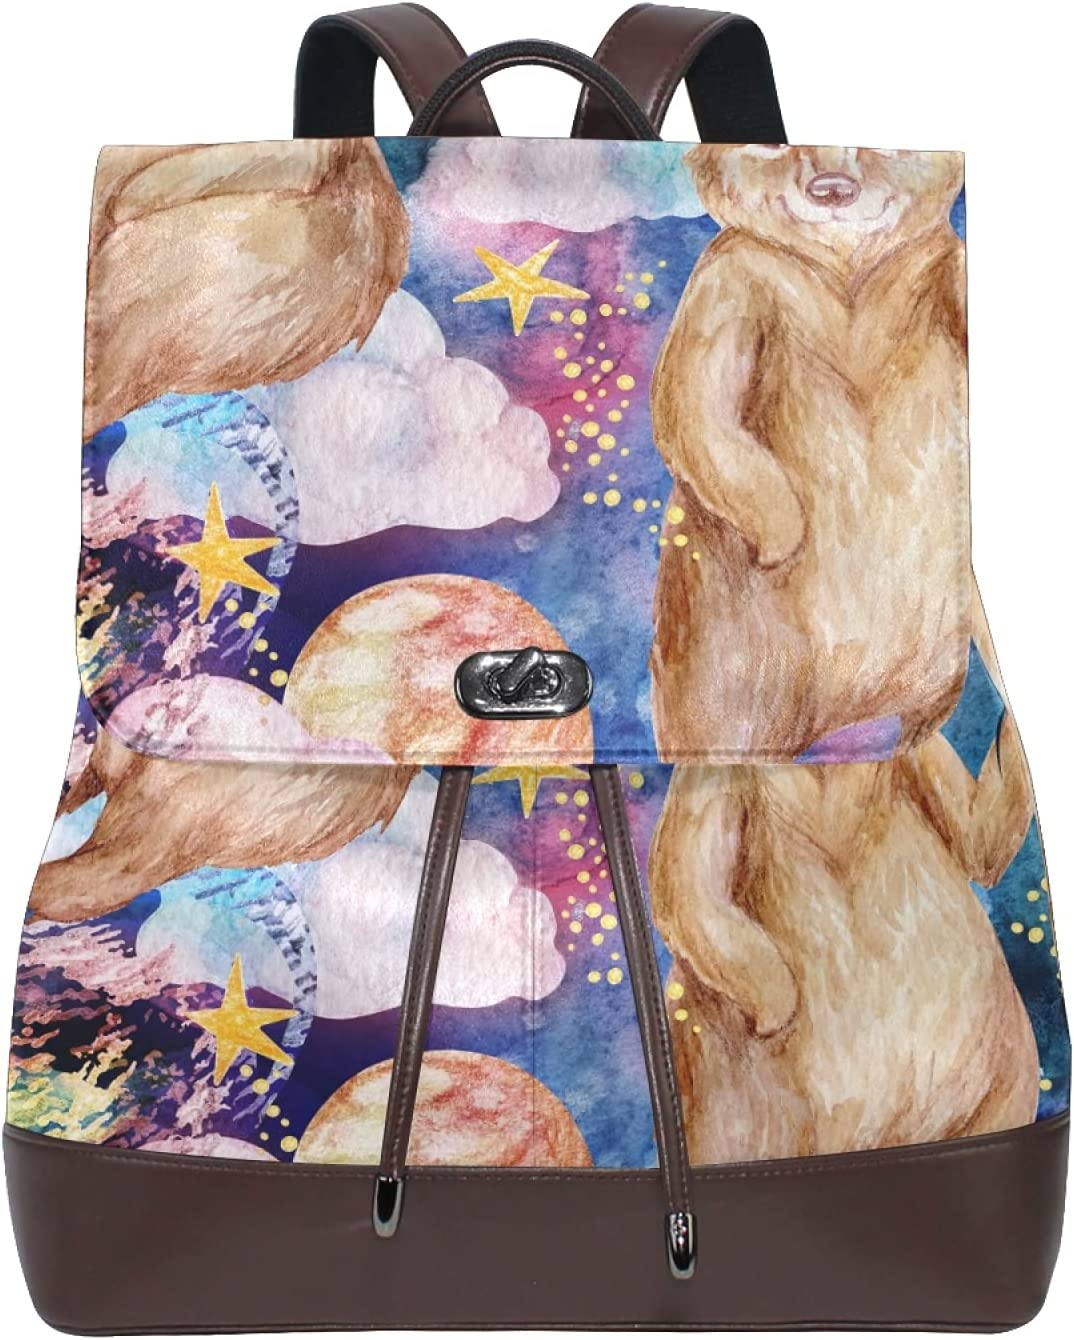 Women Leather Backpack Ladies Fashion Shoulder Bag Large Travel Bag Cool Bear In Galaxy